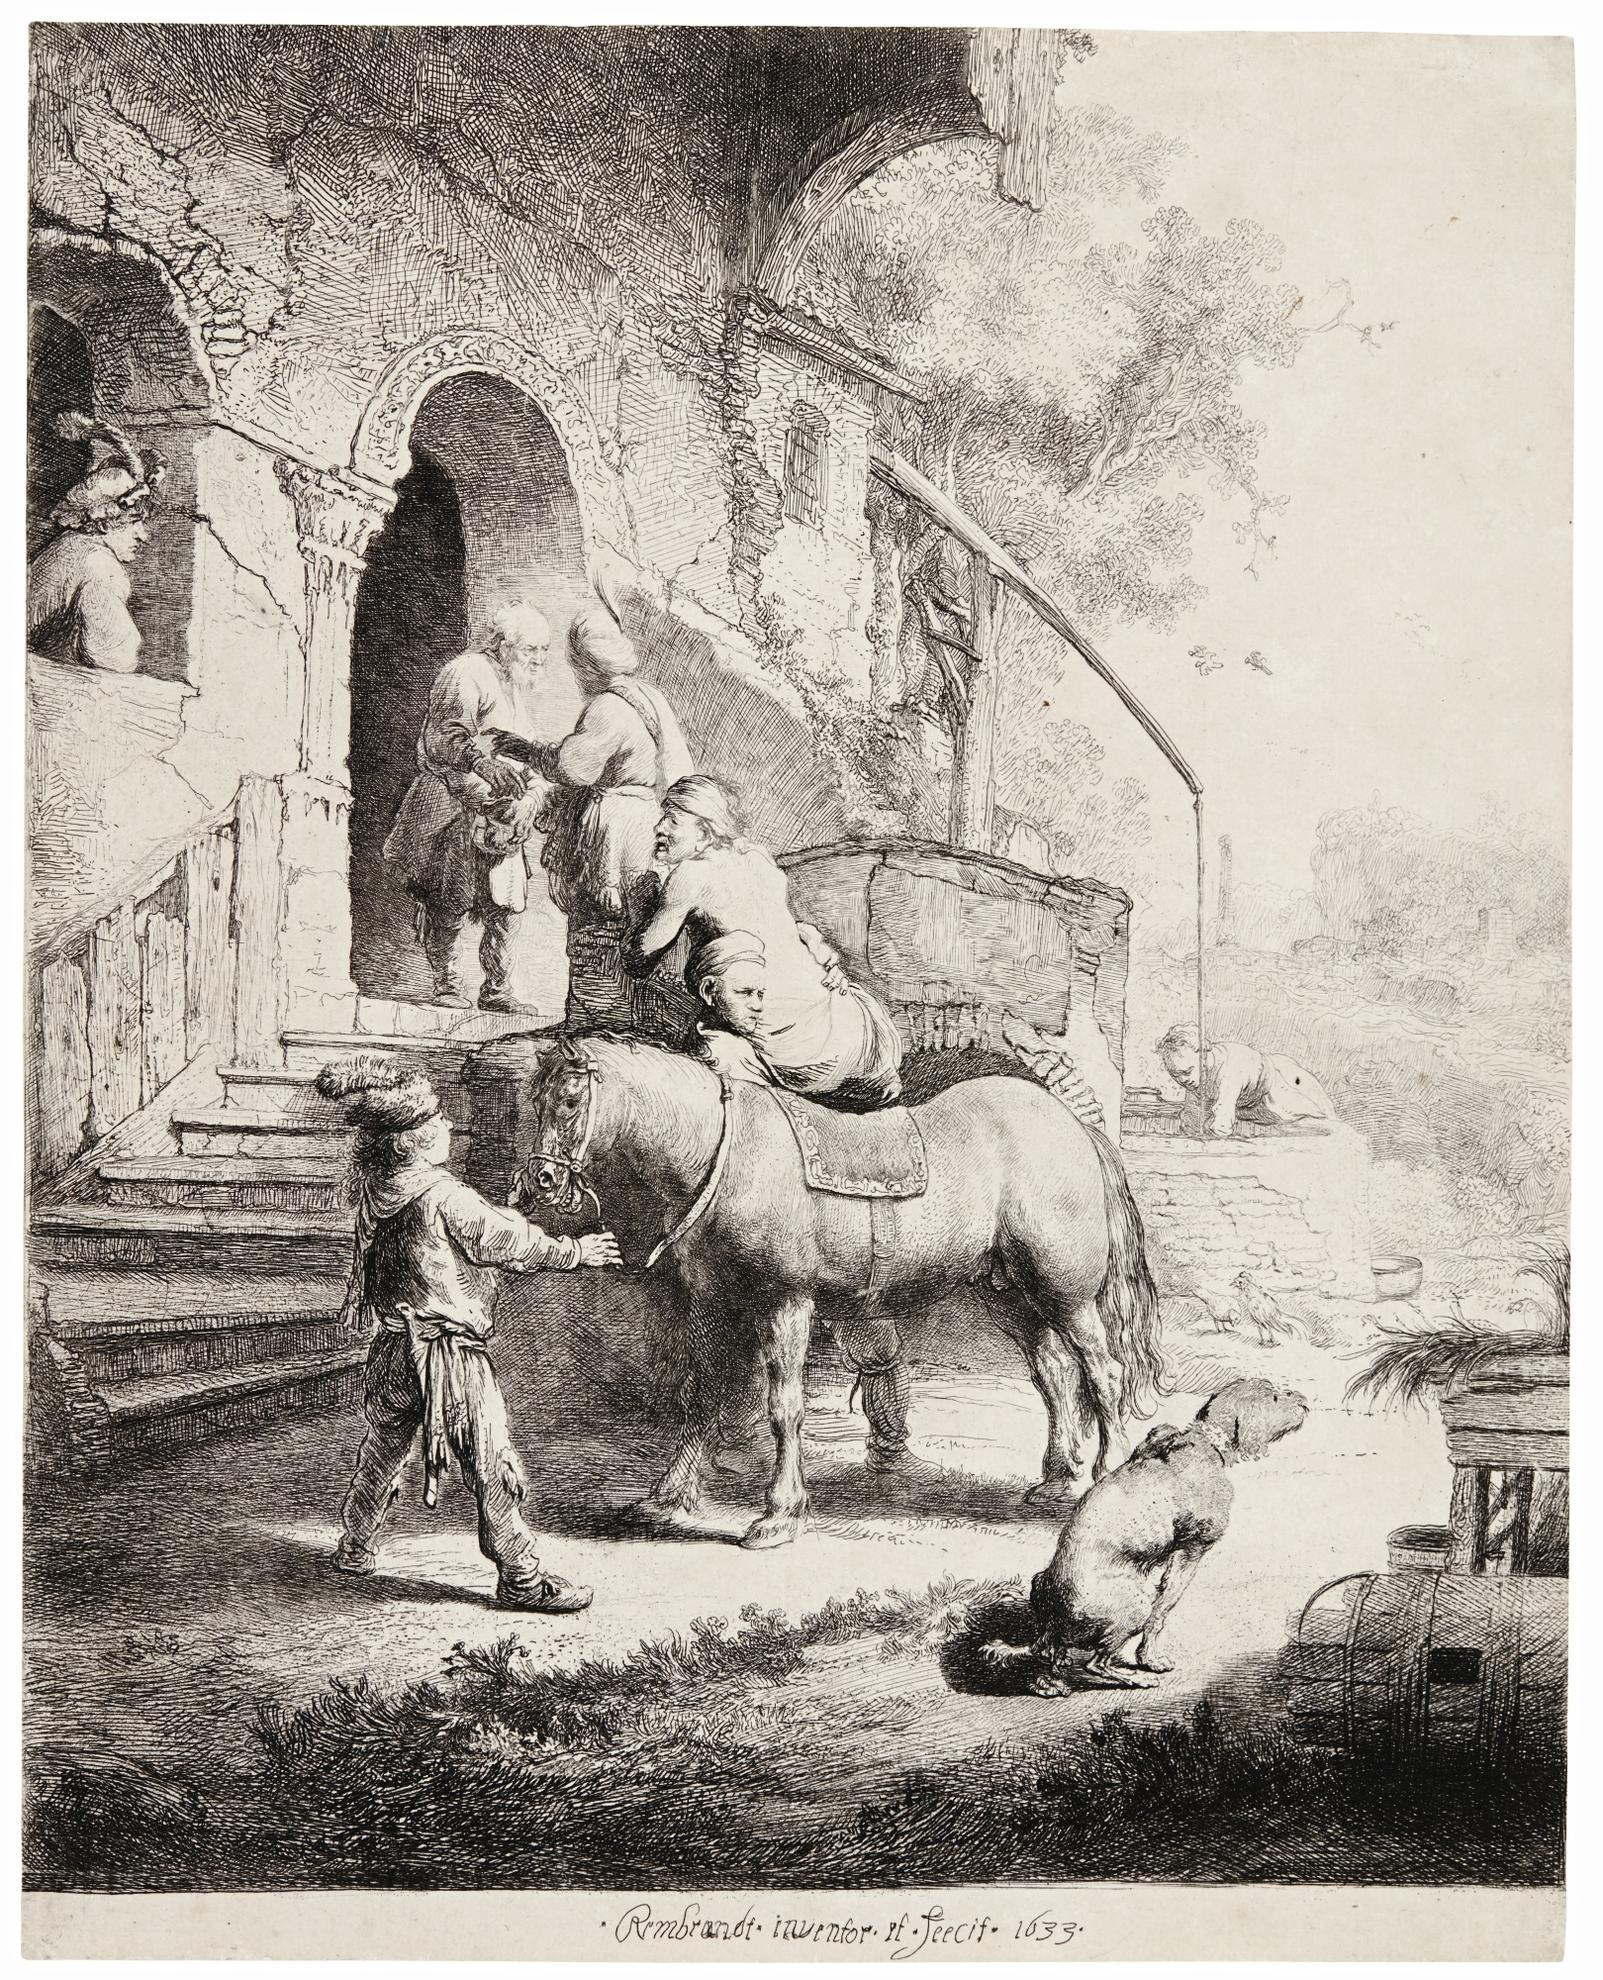 Rembrandt van Rijn-The Good Samaritan (B., Holl. 90; New Holl. 116; H. 101)-1633